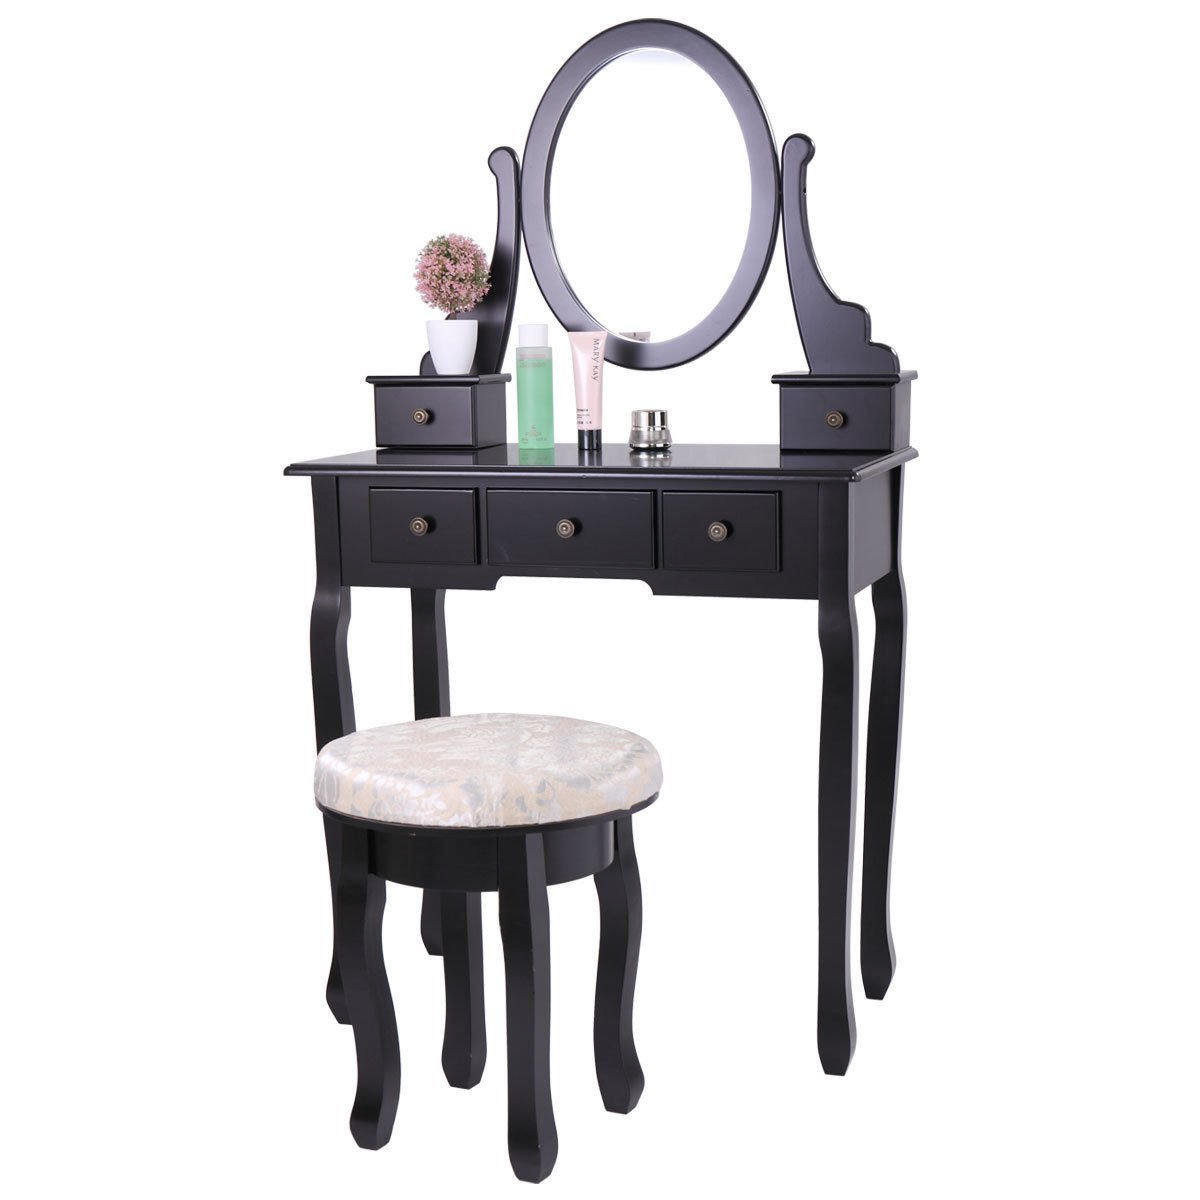 Tobbi Vanity Mirror Table Set in Black Finish Home Furniture Make up Desk Oval Mirror Table with Stool